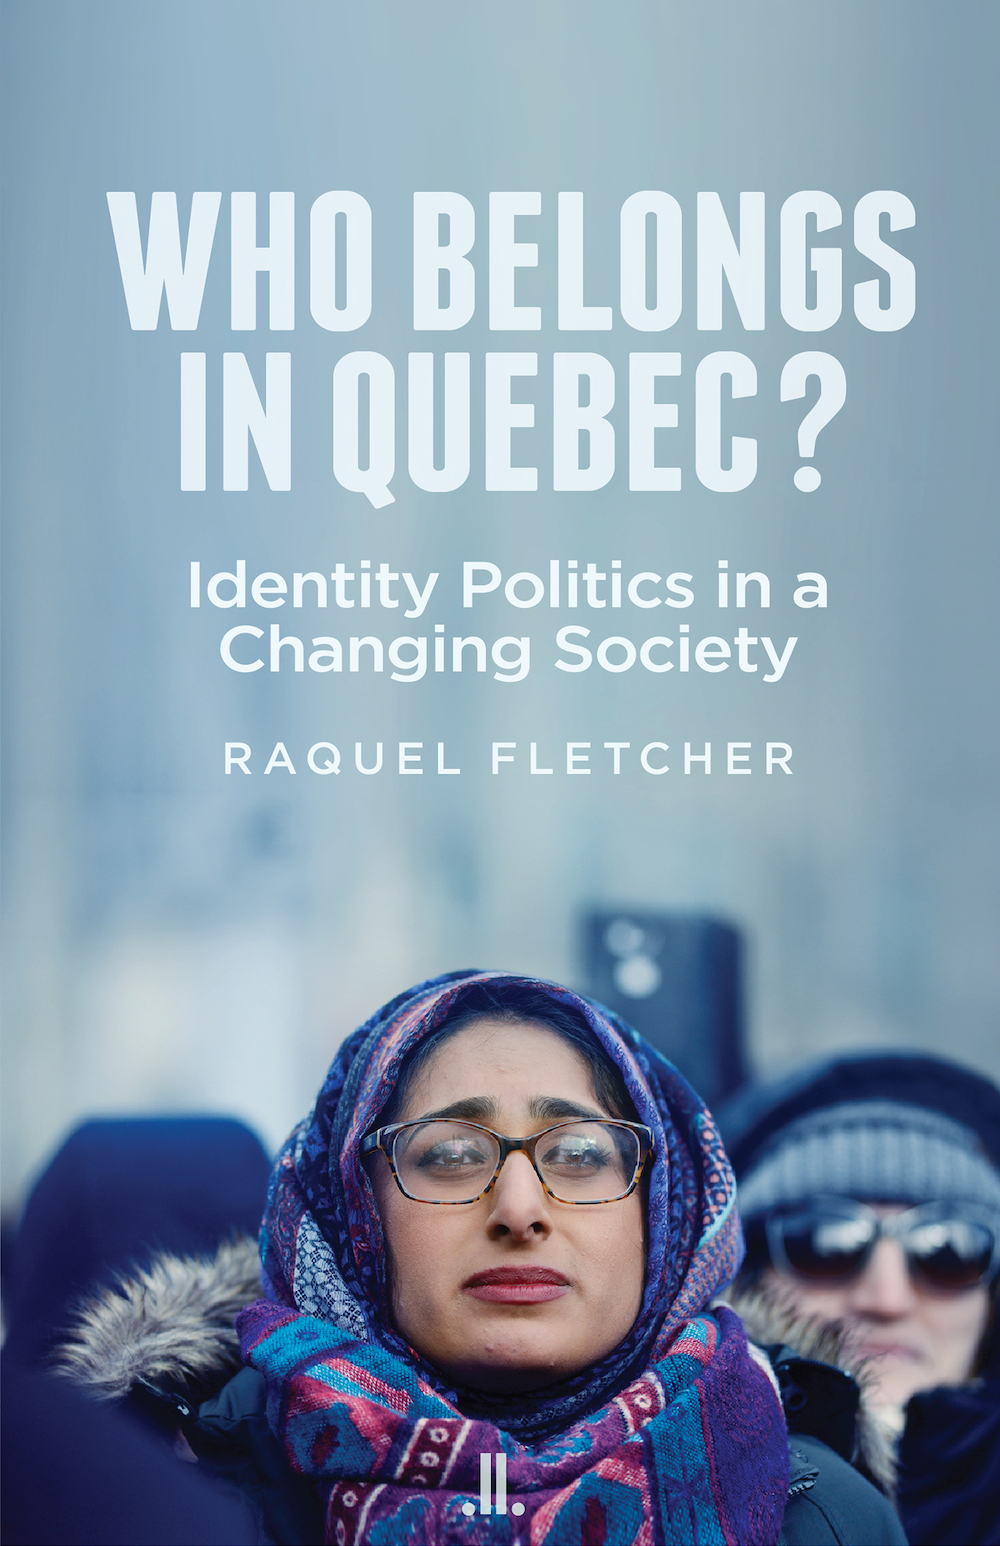 Who Belongs in Quebec? Identity Politics in a Changing Society